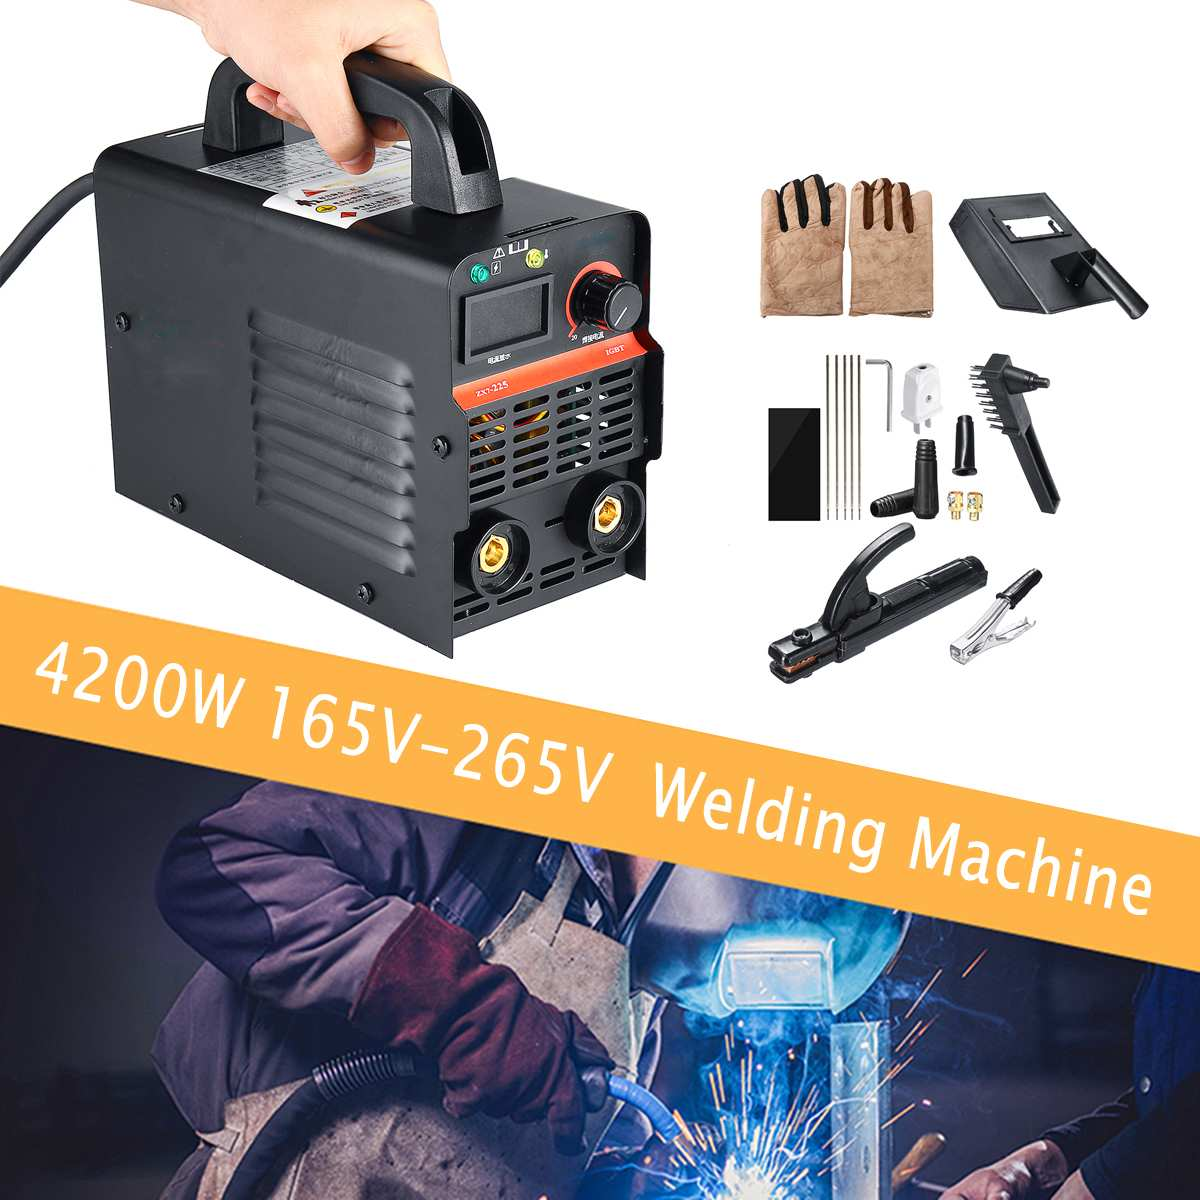 165-265V 20A-225A 4200W Mini Fully Automatic Copper Inverter Arc Electric Welding Machine MMA Welders for Home Welding Working165-265V 20A-225A 4200W Mini Fully Automatic Copper Inverter Arc Electric Welding Machine MMA Welders for Home Welding Working